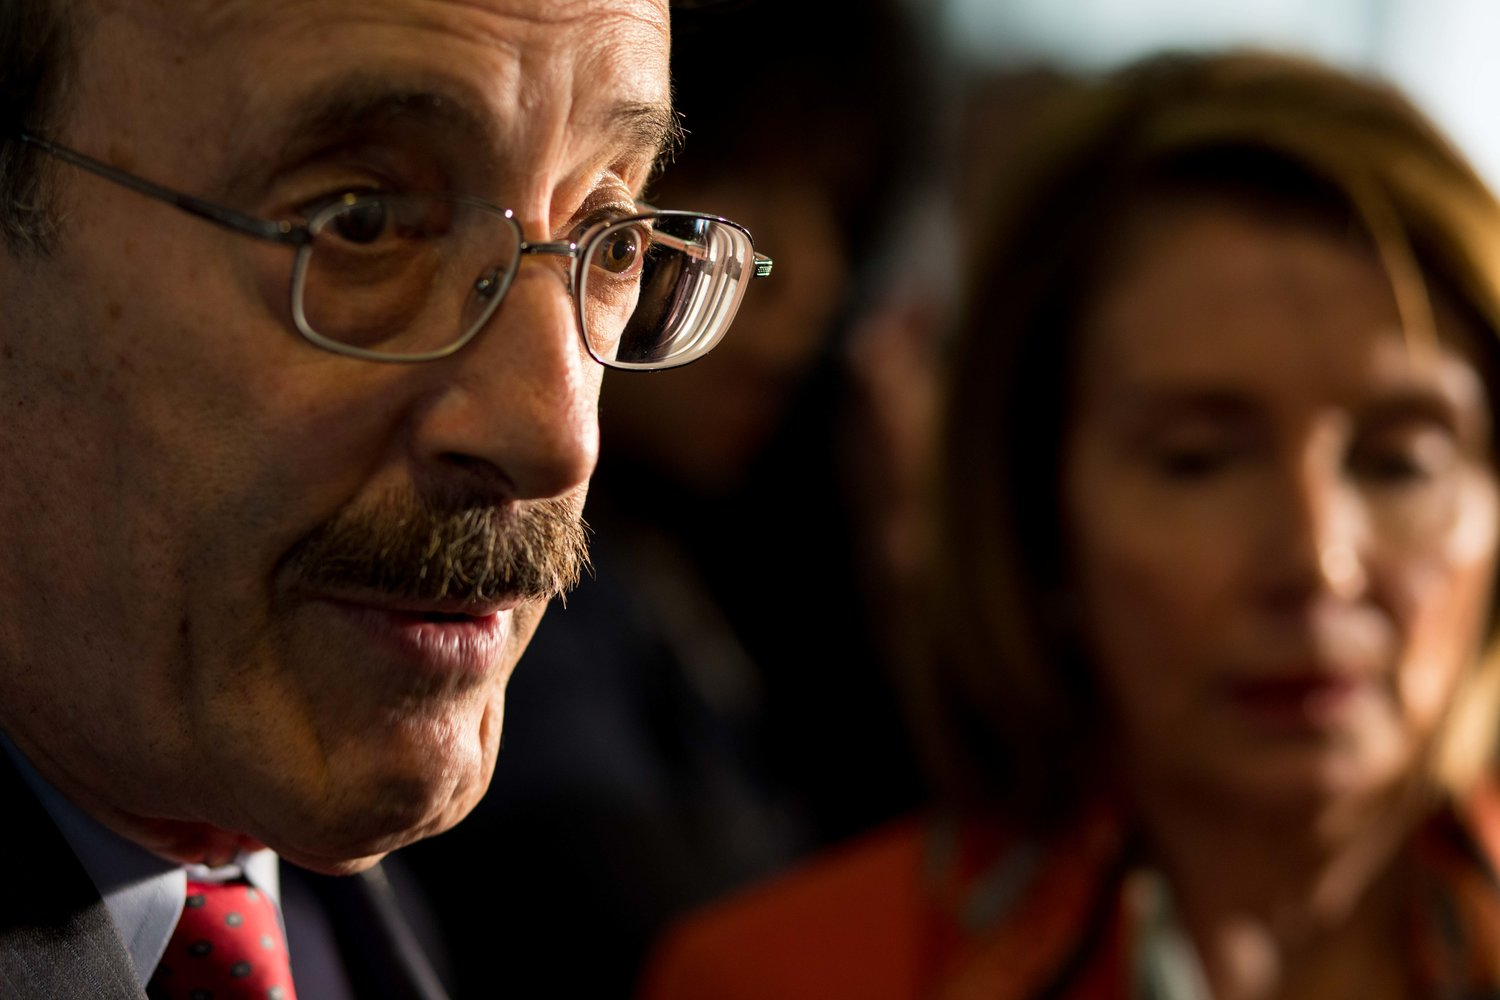 U.S. Rep. Eliot Engel was among a number of U.S. House lawmakers who questioned Dr. Rick Bright from the U.S. Department of Health and Human Services following his allegations the Trump administration ignored his warnings about the coronavirus that causes COVID-19.